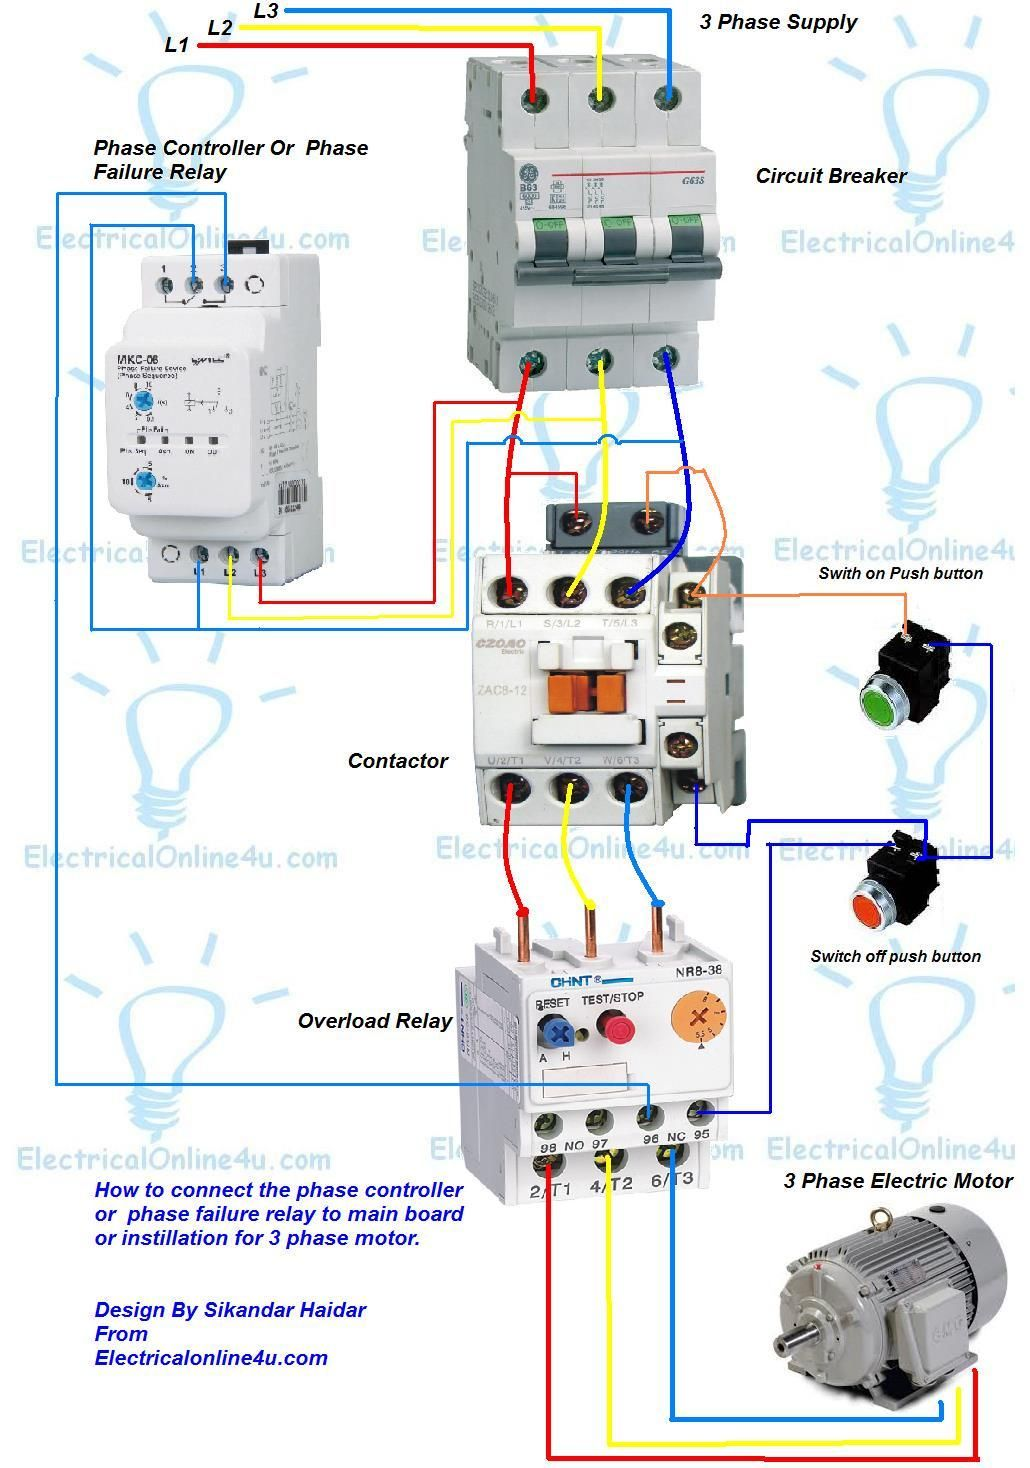 Phase Controller Wiring  Phase Failure Relay Diagram | di